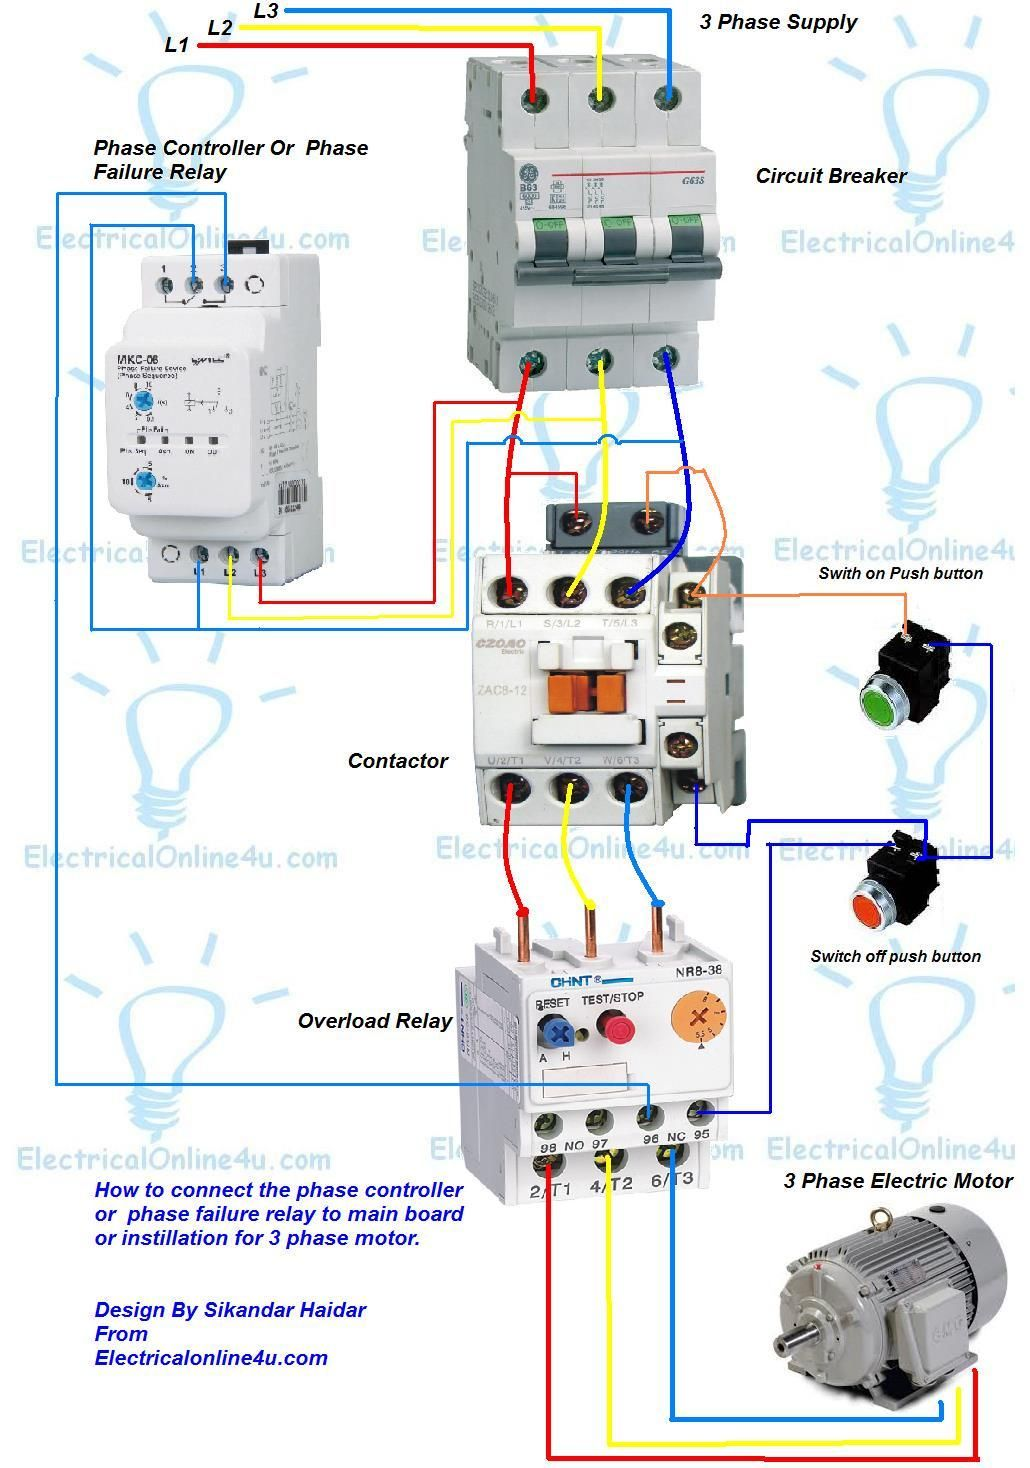 Phase Controller Wiring  Phase Failure Relay Diagram | di